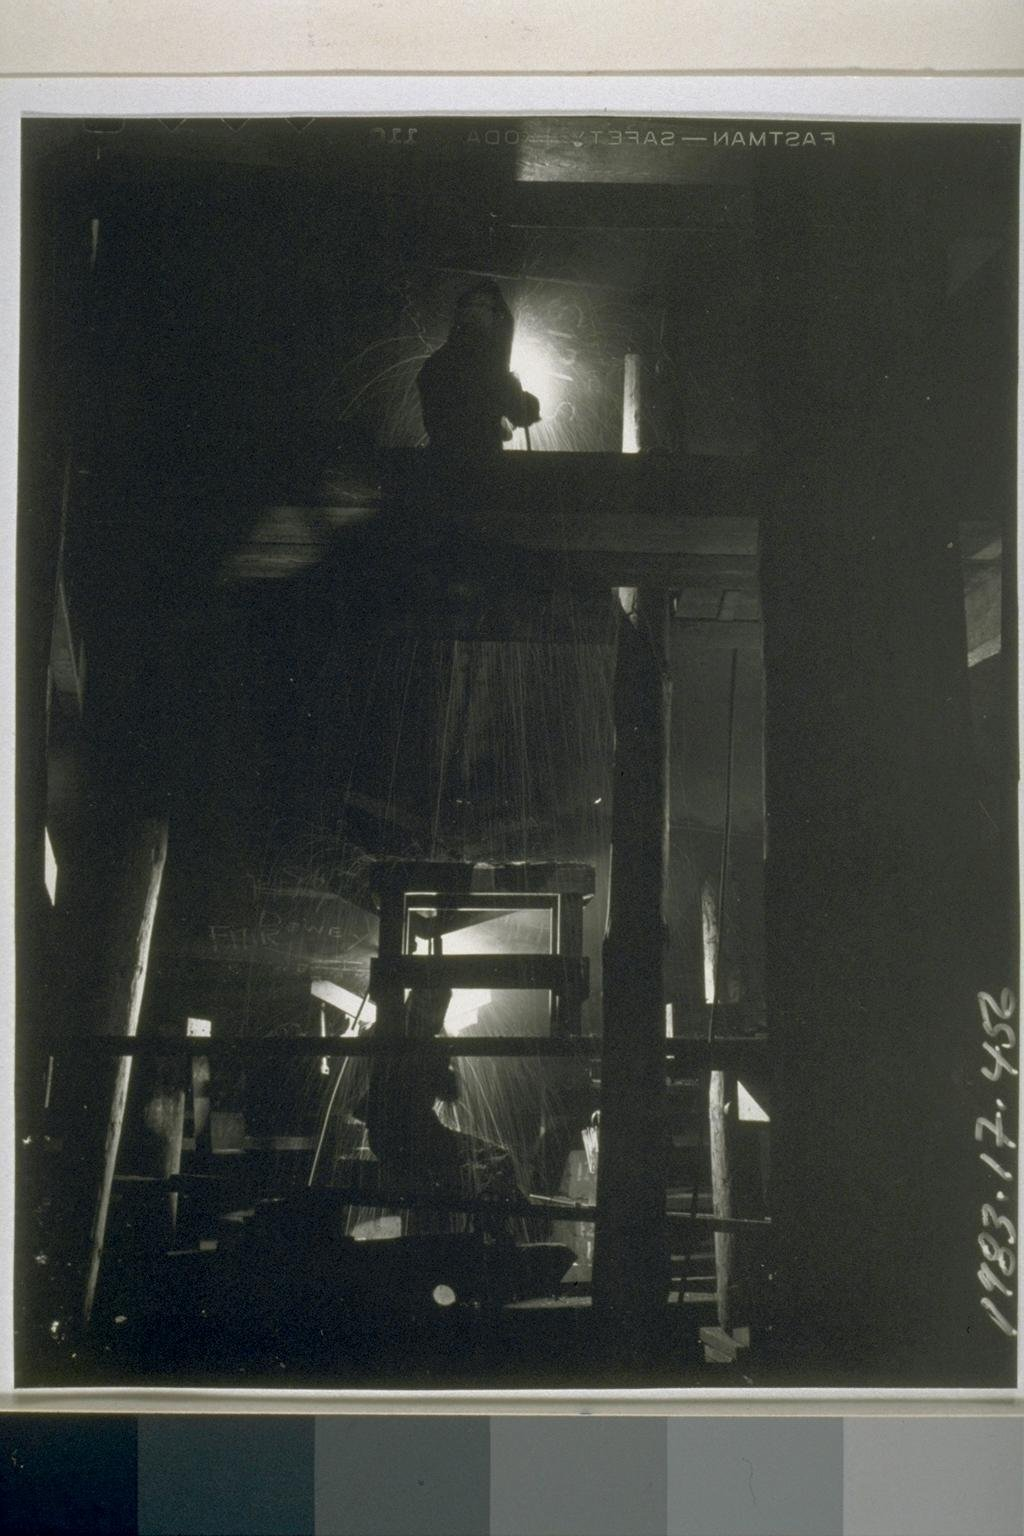 Richmond welders at work deep inside the hull of a ship. Welding (versus riveting) was one of the recent technological advancements that sped up shipbuilding during World War II. (UC Berkeley, Bancroft Library)